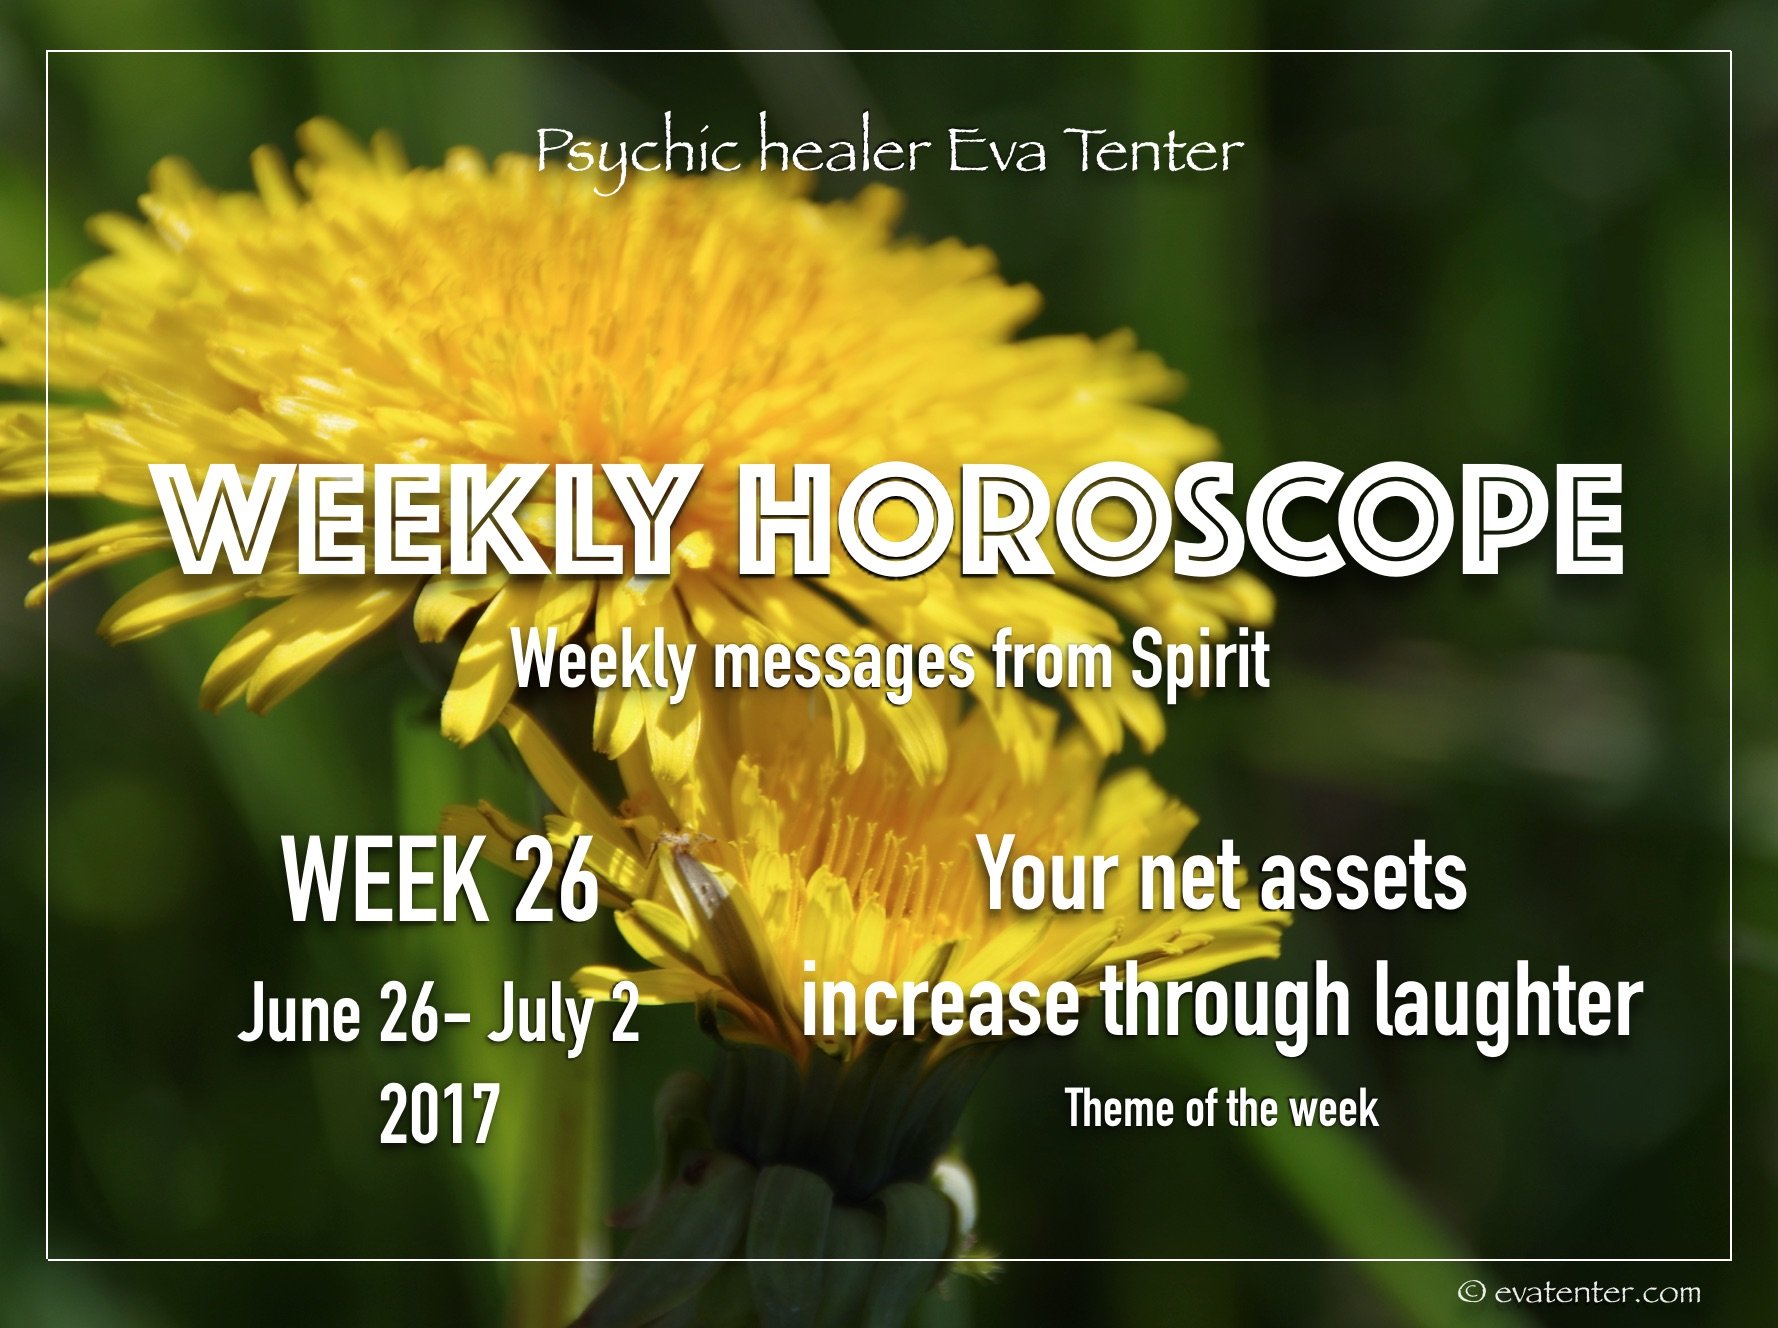 Weekly horoscope June 26-July 2, 2017 #horoscope #psychicreading